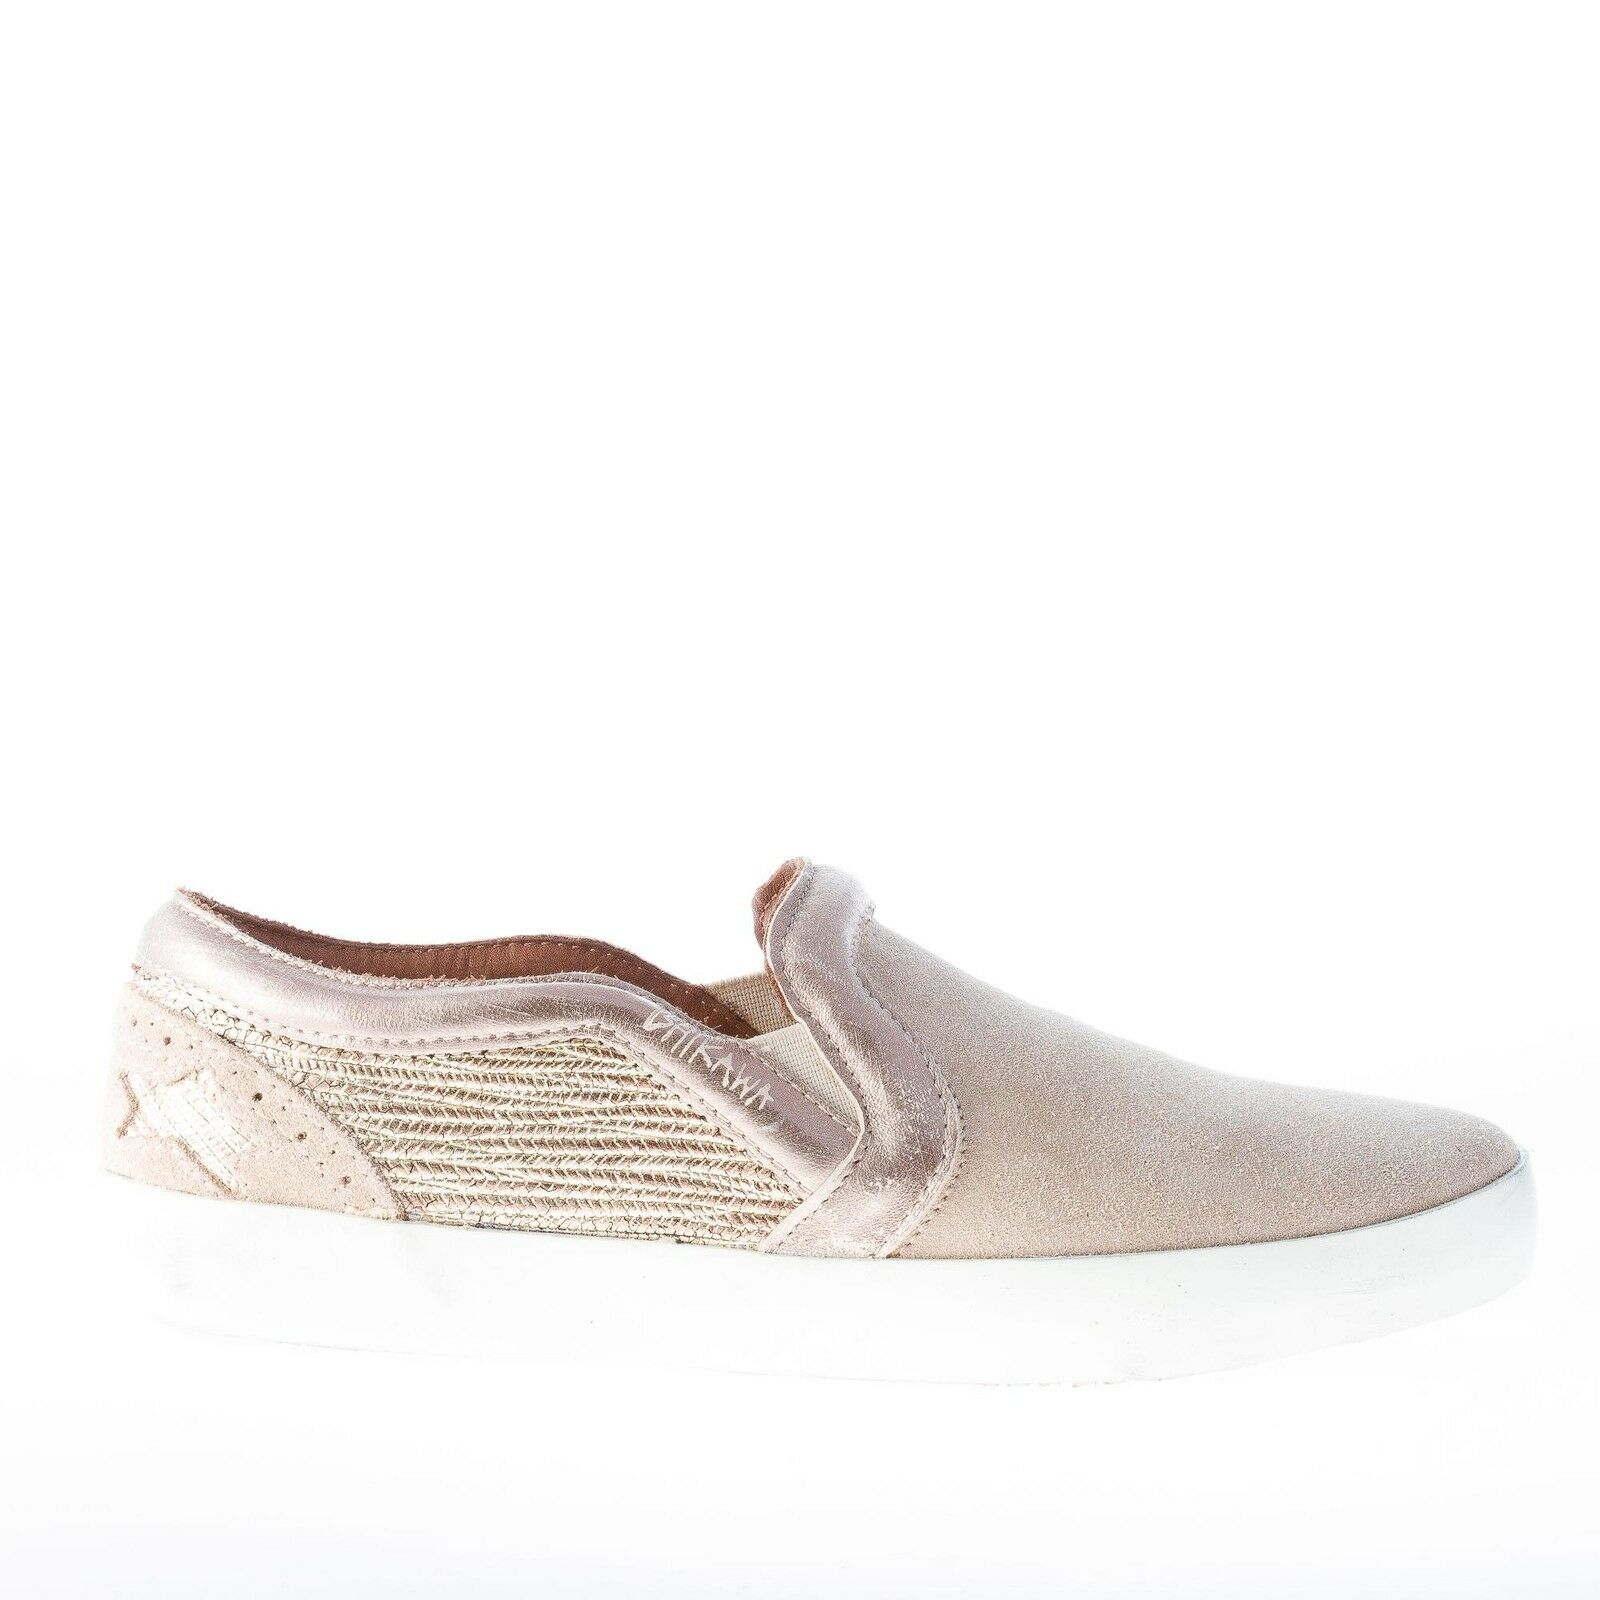 ISHIKAWA damen schuhe shoes beige suede slip on with gold tone leather details